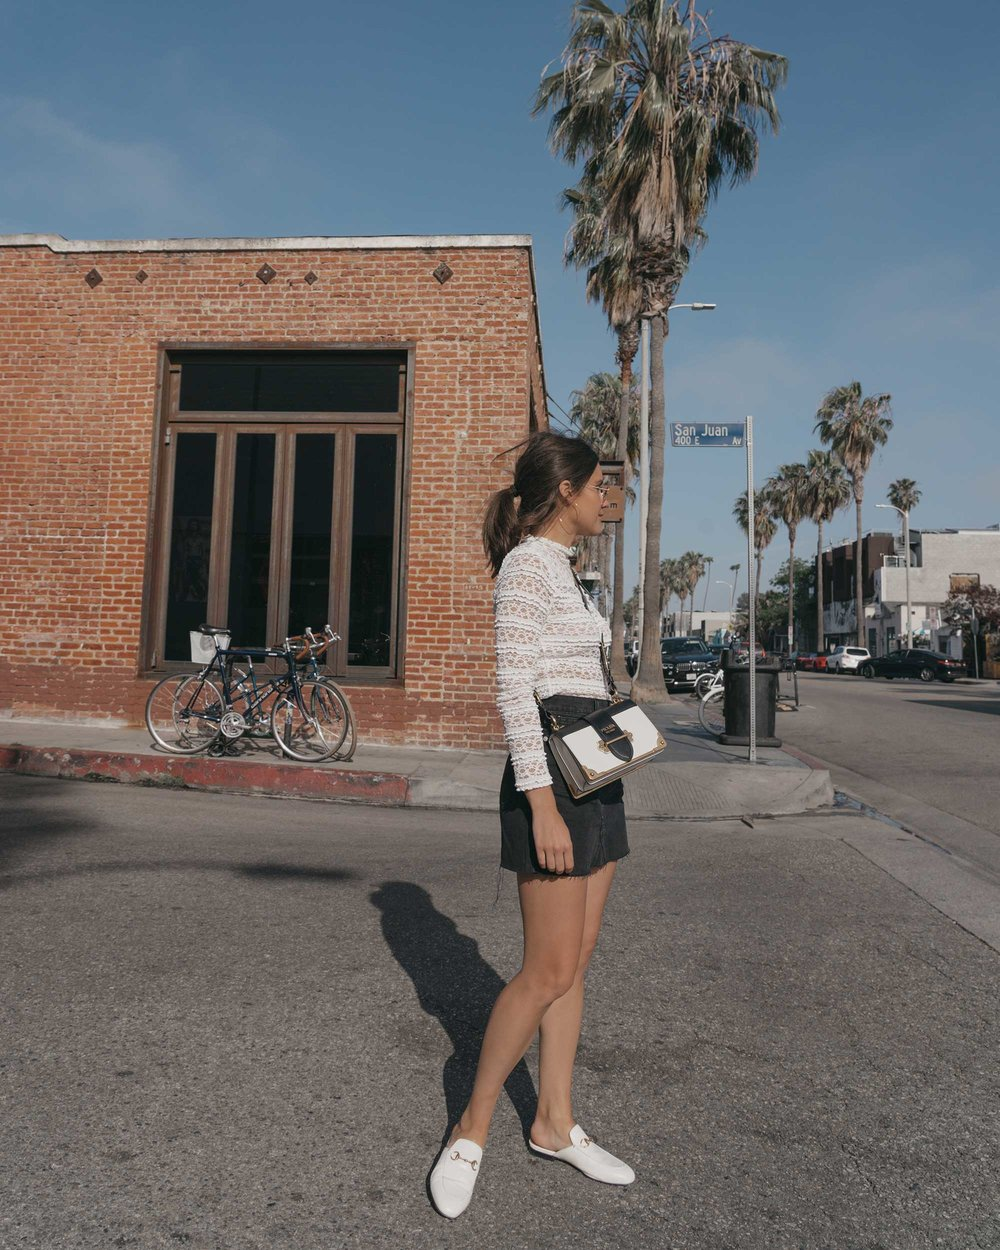 Prada City Saffiano Leather Cahier Bag, Black Denim Skirt, Summer outfit, Abbot Kinney California1.jpg